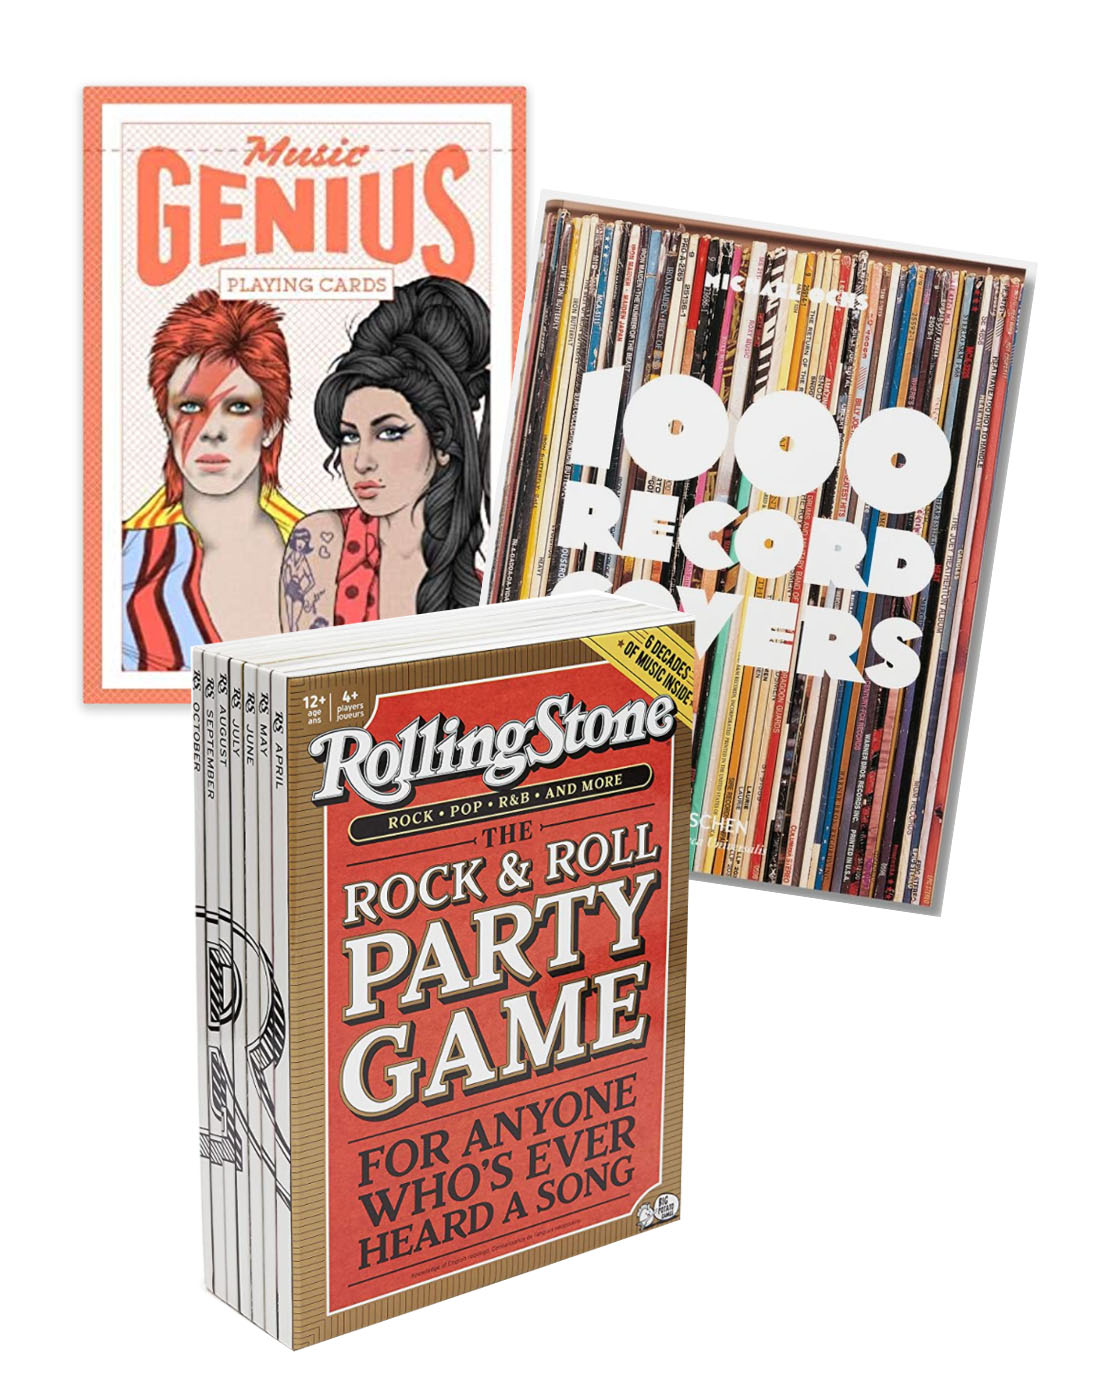 Games and gifts for Music Lovers